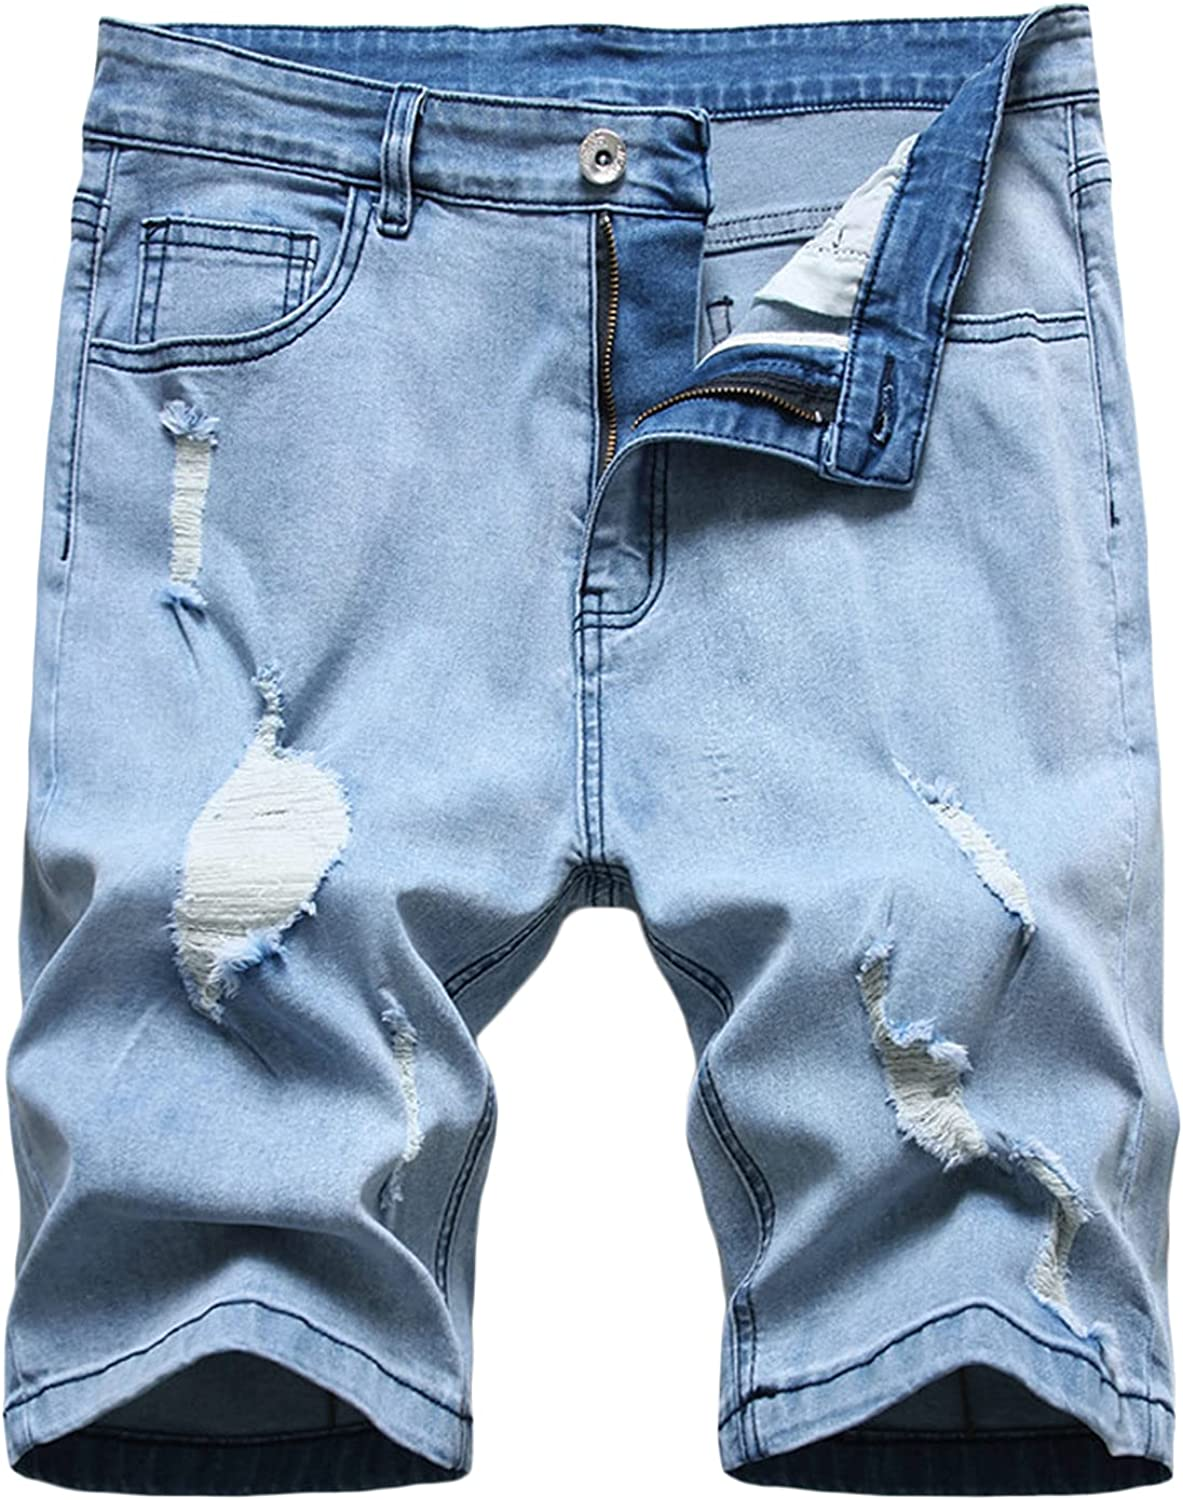 Men's Stretch Ripped Jean Shorts Broken Distressed Washed Denim Shorts Slim Fit Knee Length Jean Short Pants With Holes